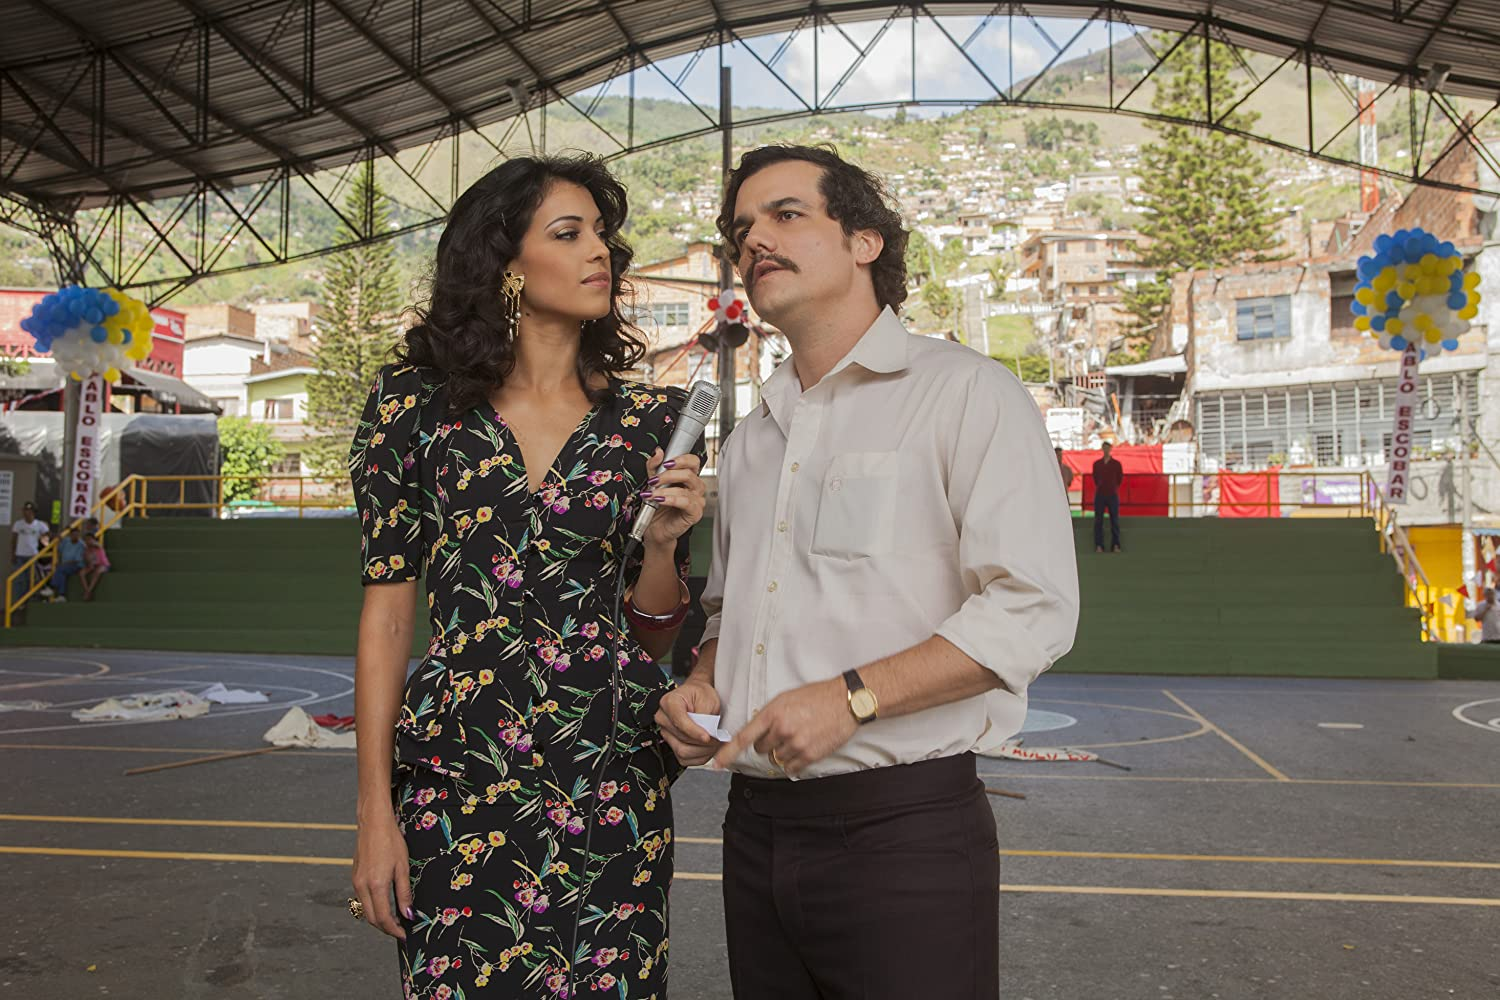 Wagner Moura and Stephanie Sigman in Narcos (2015)